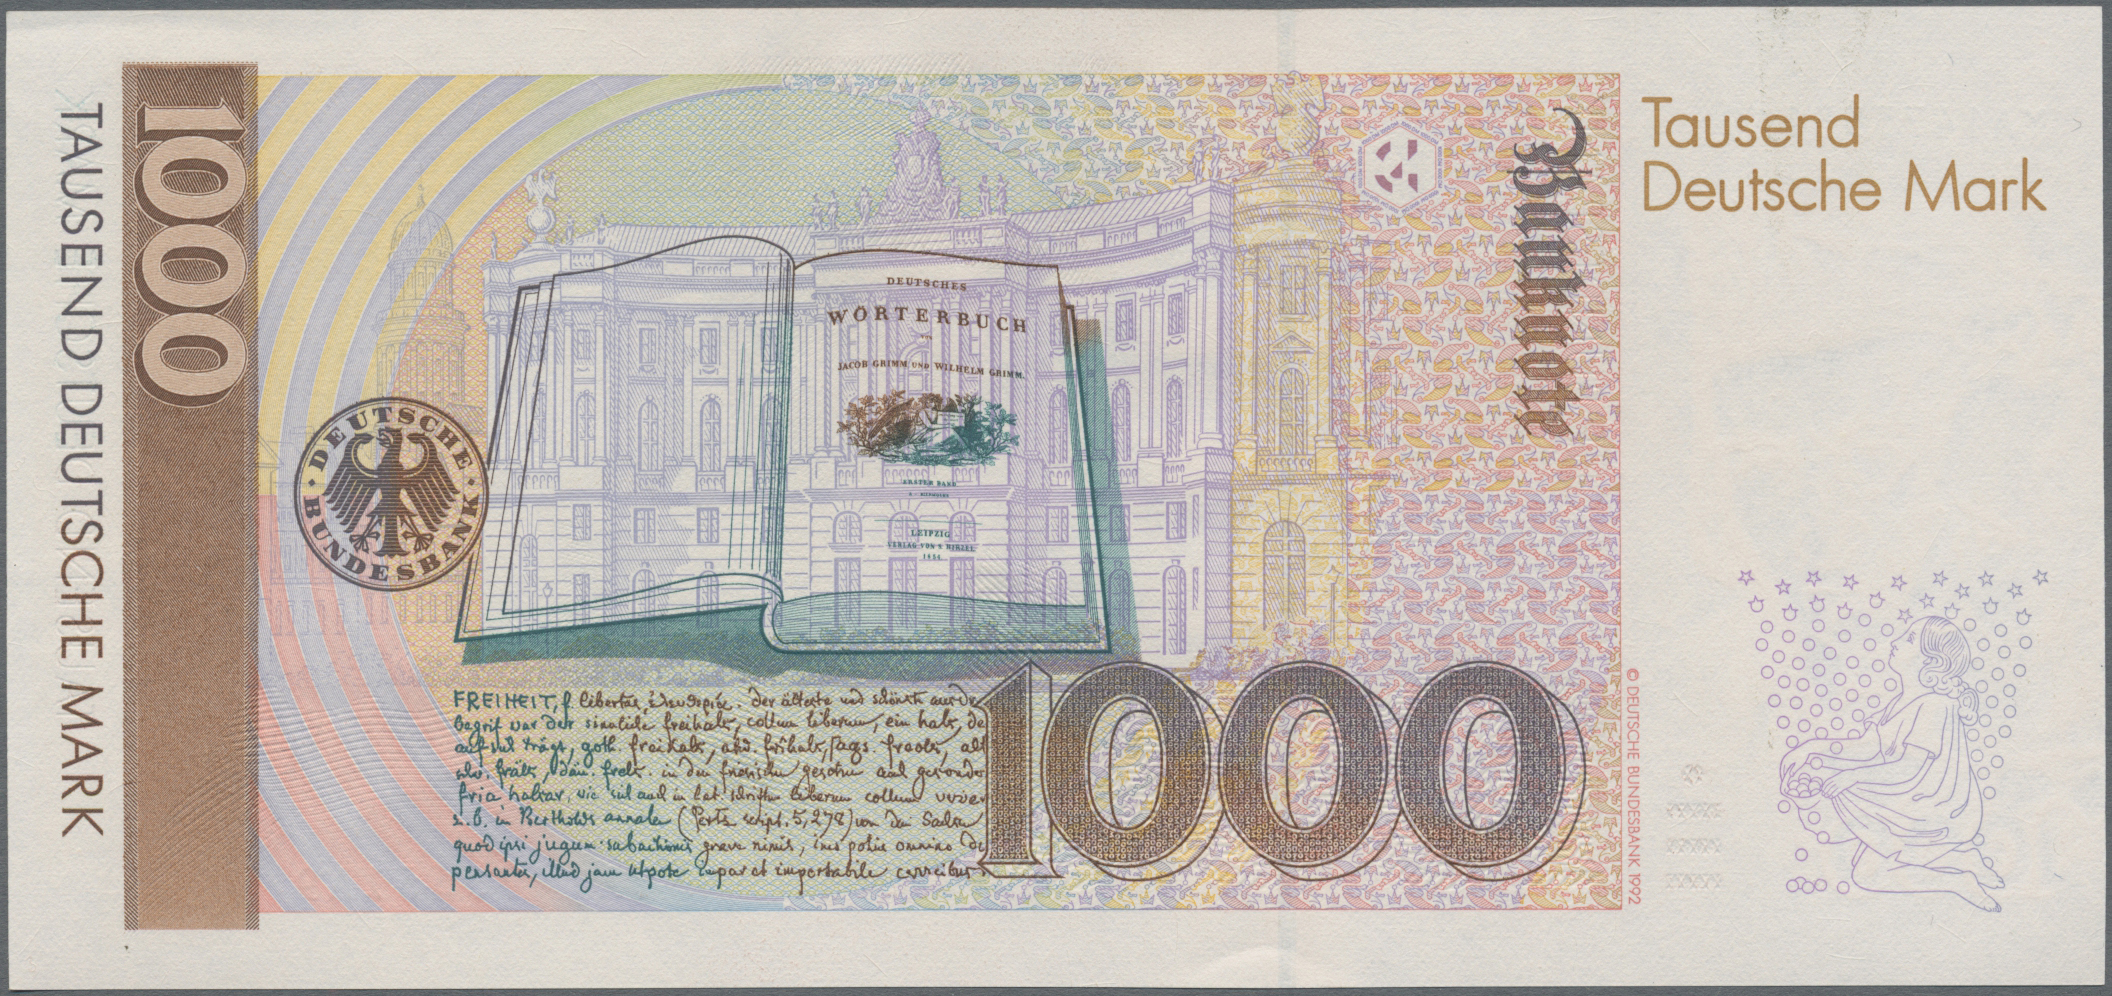 Lot 03454 - Deutschland - Bank Deutscher Länder + Bundesrepublik Deutschland | Banknoten  -  Auktionshaus Christoph Gärtner GmbH & Co. KG Sale #45 Banknotes Germany/Numismatics